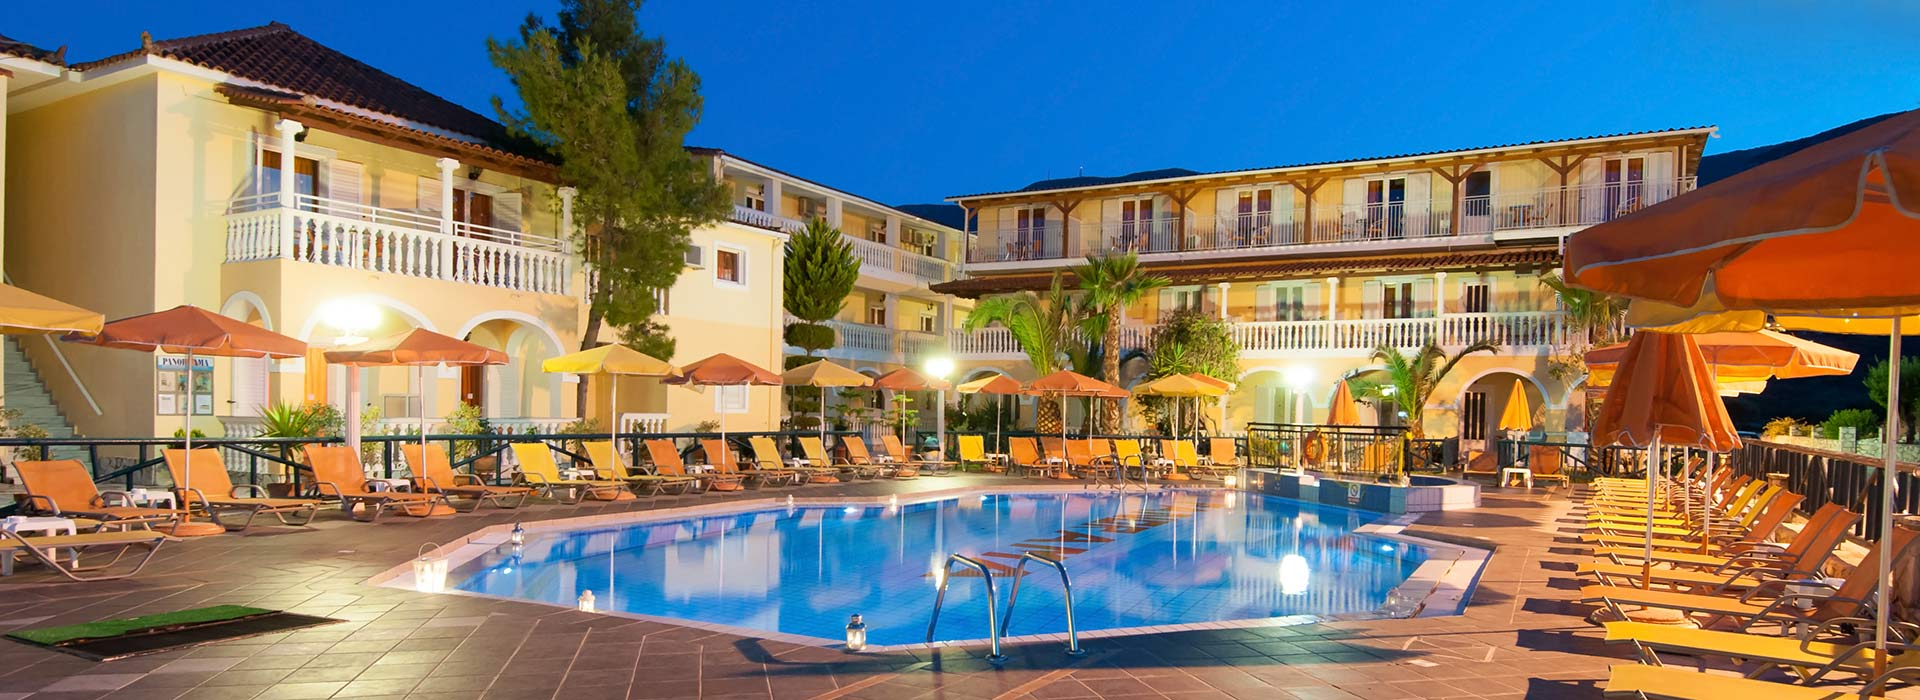 panorama studios apartments - alykes zante zakynthos greece